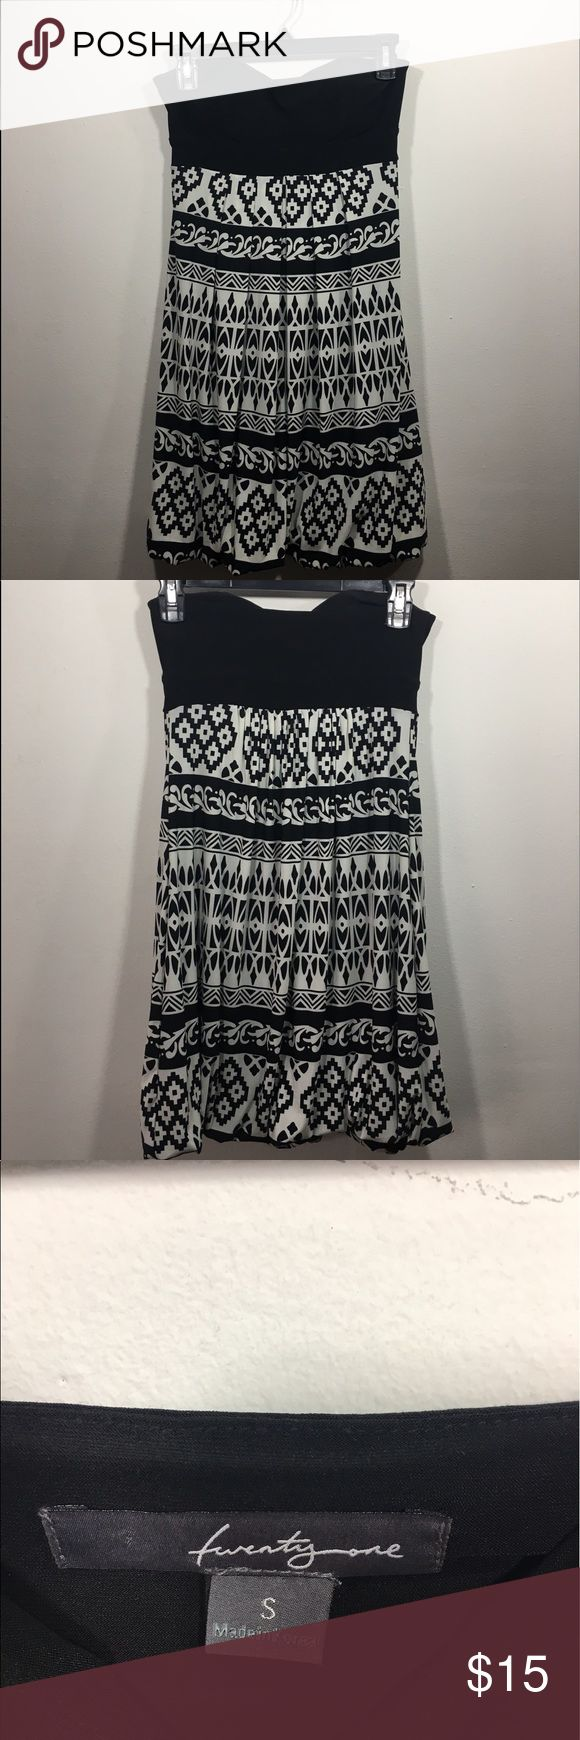 Strapless Black & White Aztec Short Dress Twenty One black and white geometric/Aztec pattern dress. Strapless soft sweetheart neckline. Good for summer formal or going out. Stretchy fabric. Built in cup lining. Twenty One Dresses Strapless